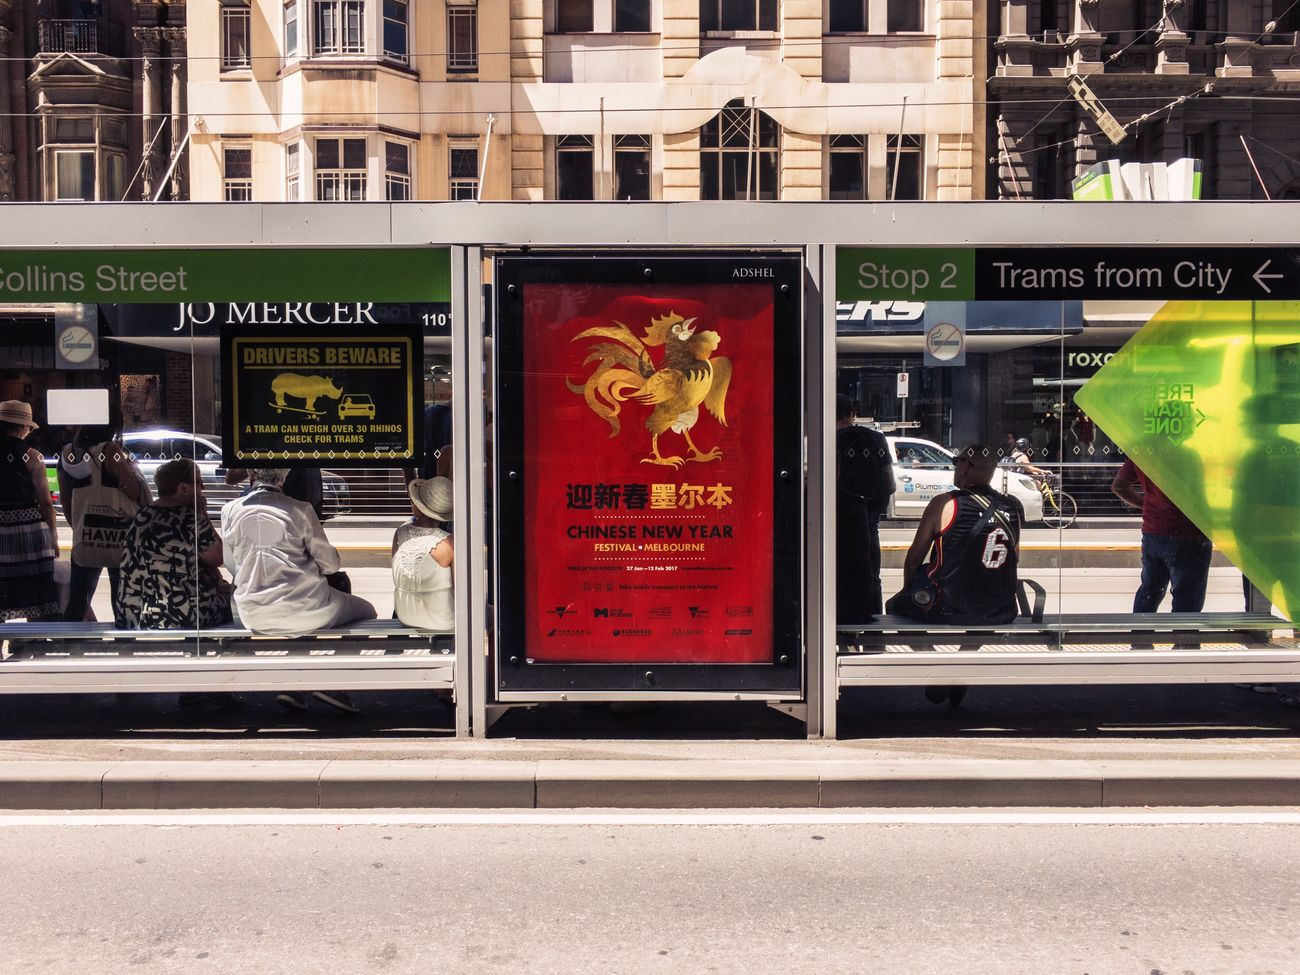 Rooster Hunting Streetphotography Streetphoto_color Streets Of Melbourne Everyday Australia Year Of The Rooster Mobilephotography ShotoniPhone6s IPhoneography MelbournePhotographer People Watching Lunar New Year VSCO